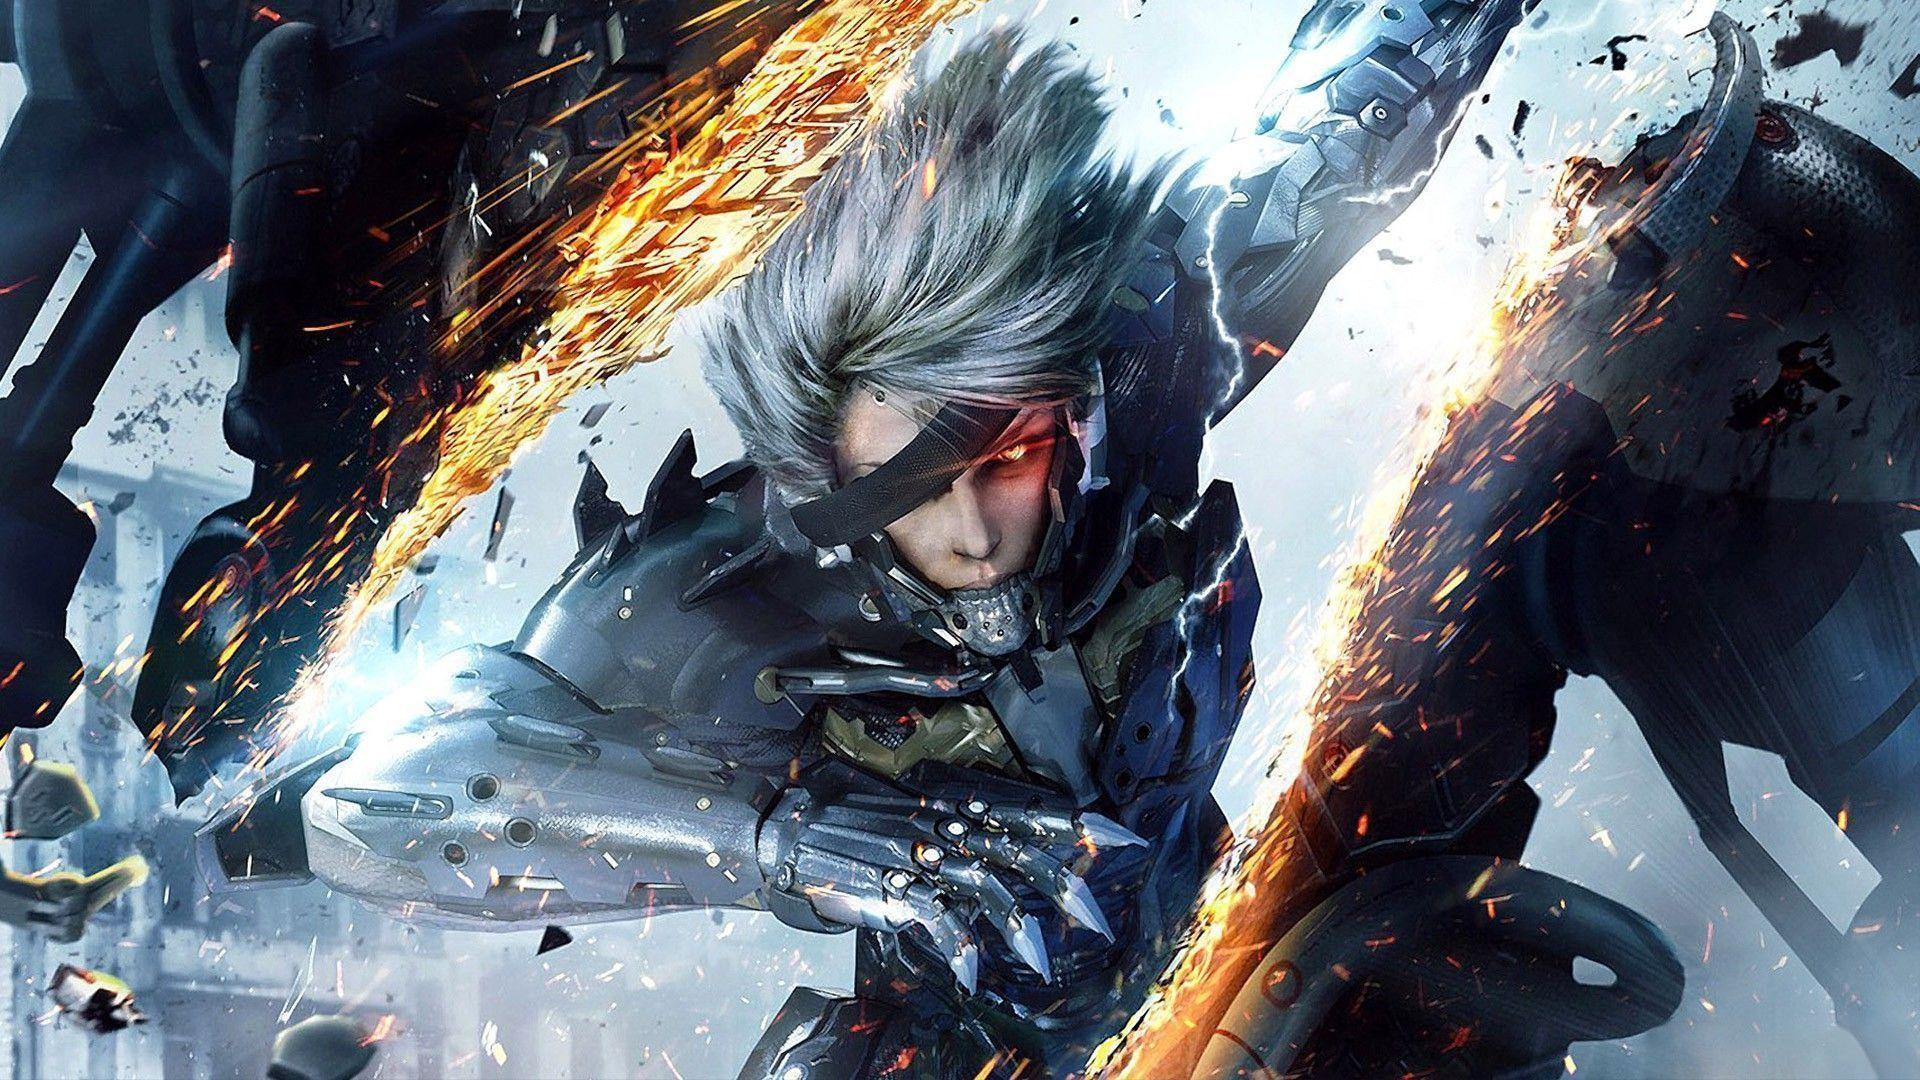 Metal gear solid raiden wallpapers wallpaper cave metal gear rising wallpaper and photos new wallpapers voltagebd